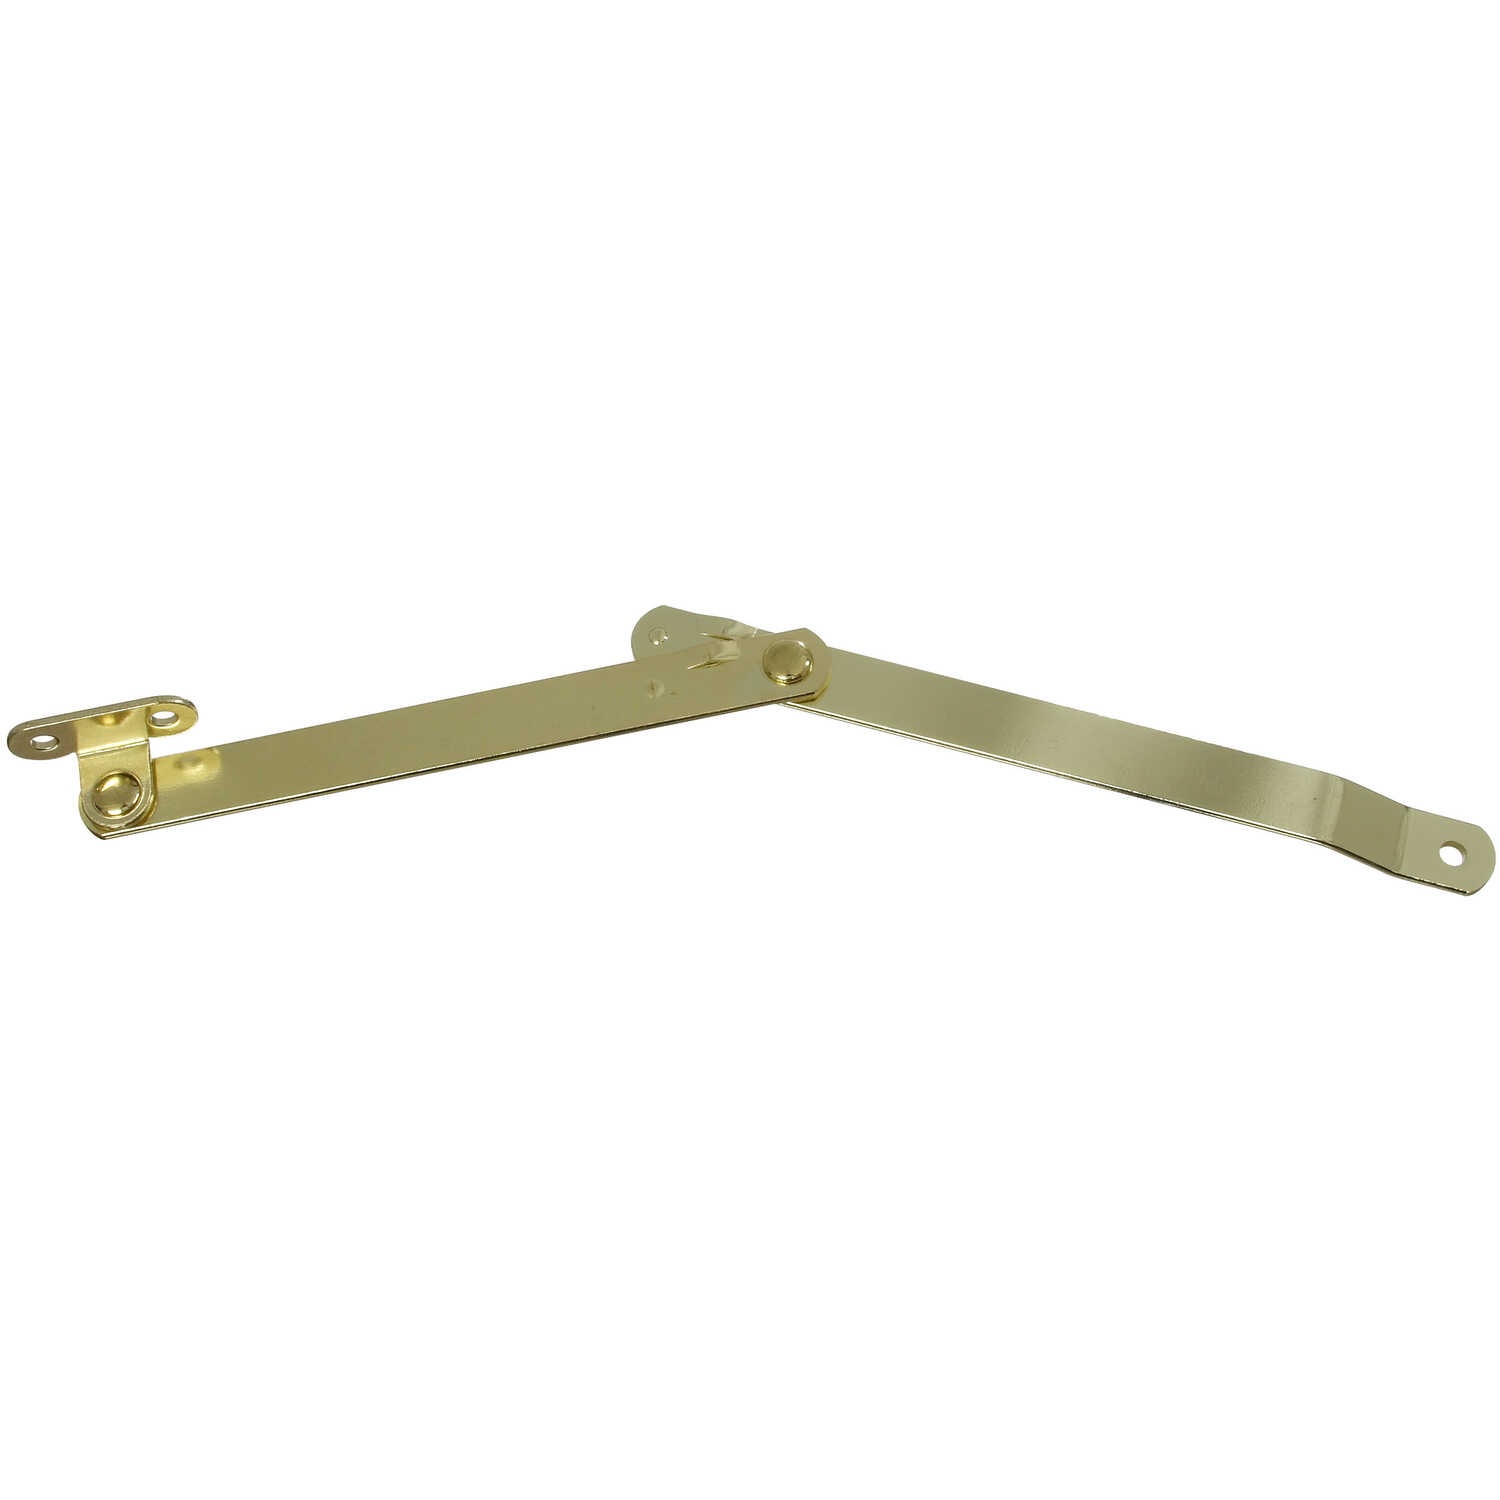 National Hardware  Brass-Plated  Steel  Left Hand Folding Support  1 pk 9.8 in.